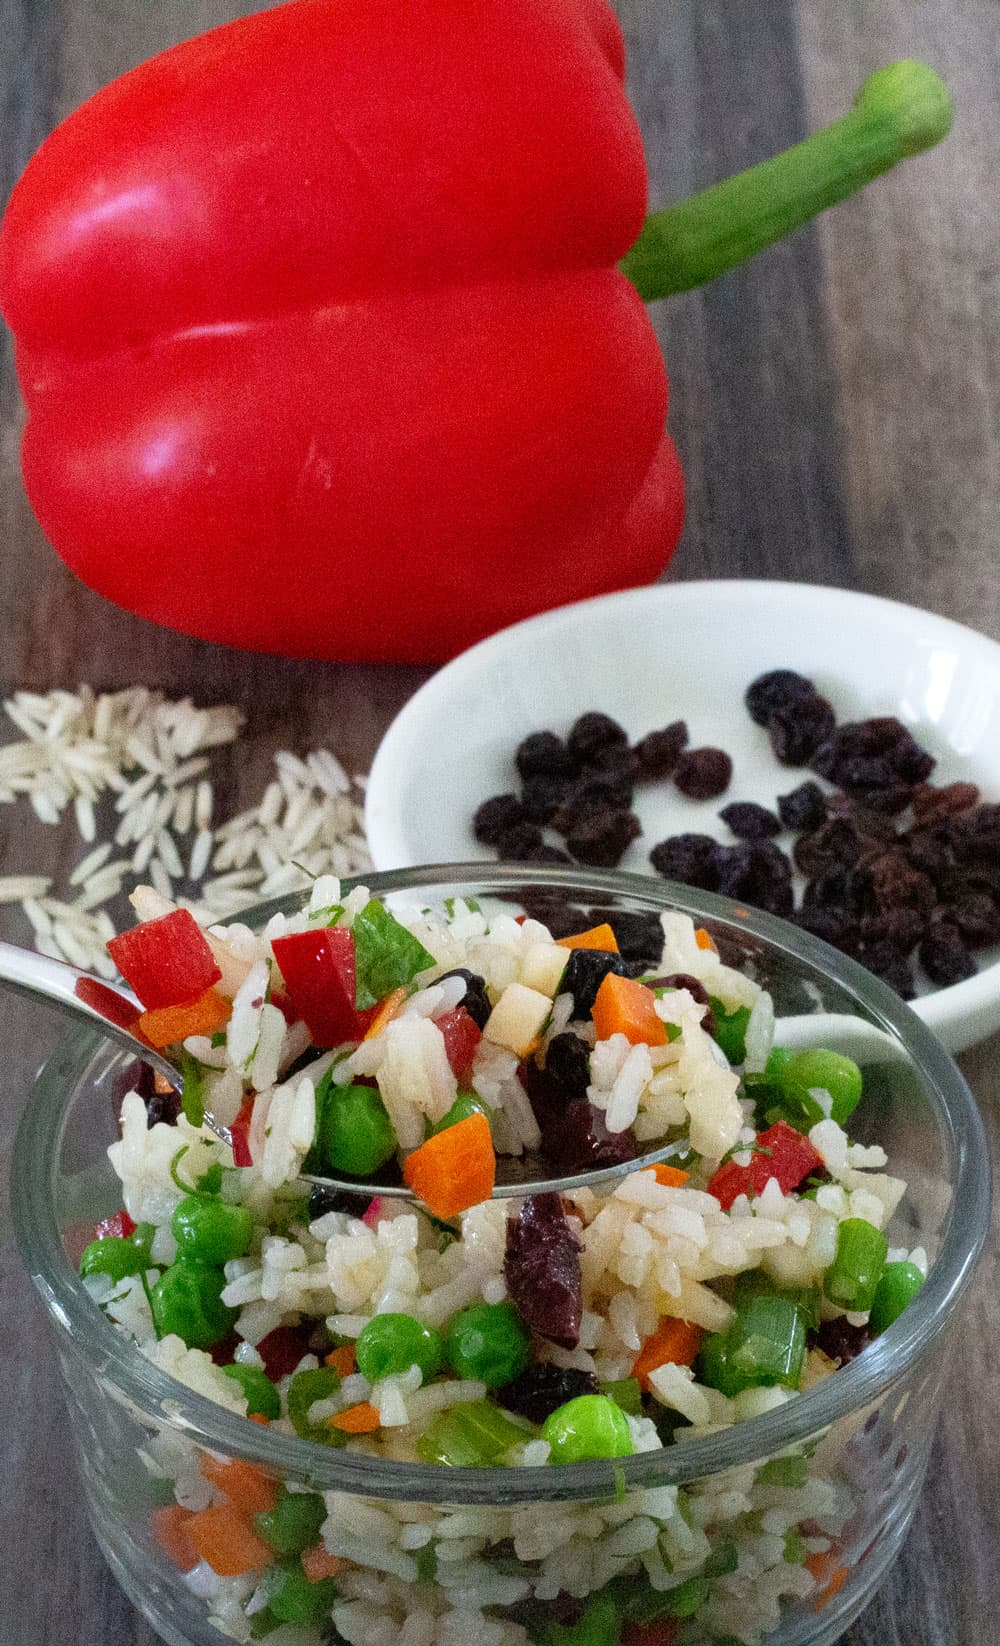 confetti rice vegetable salad with rice, currants and a red pepper in background